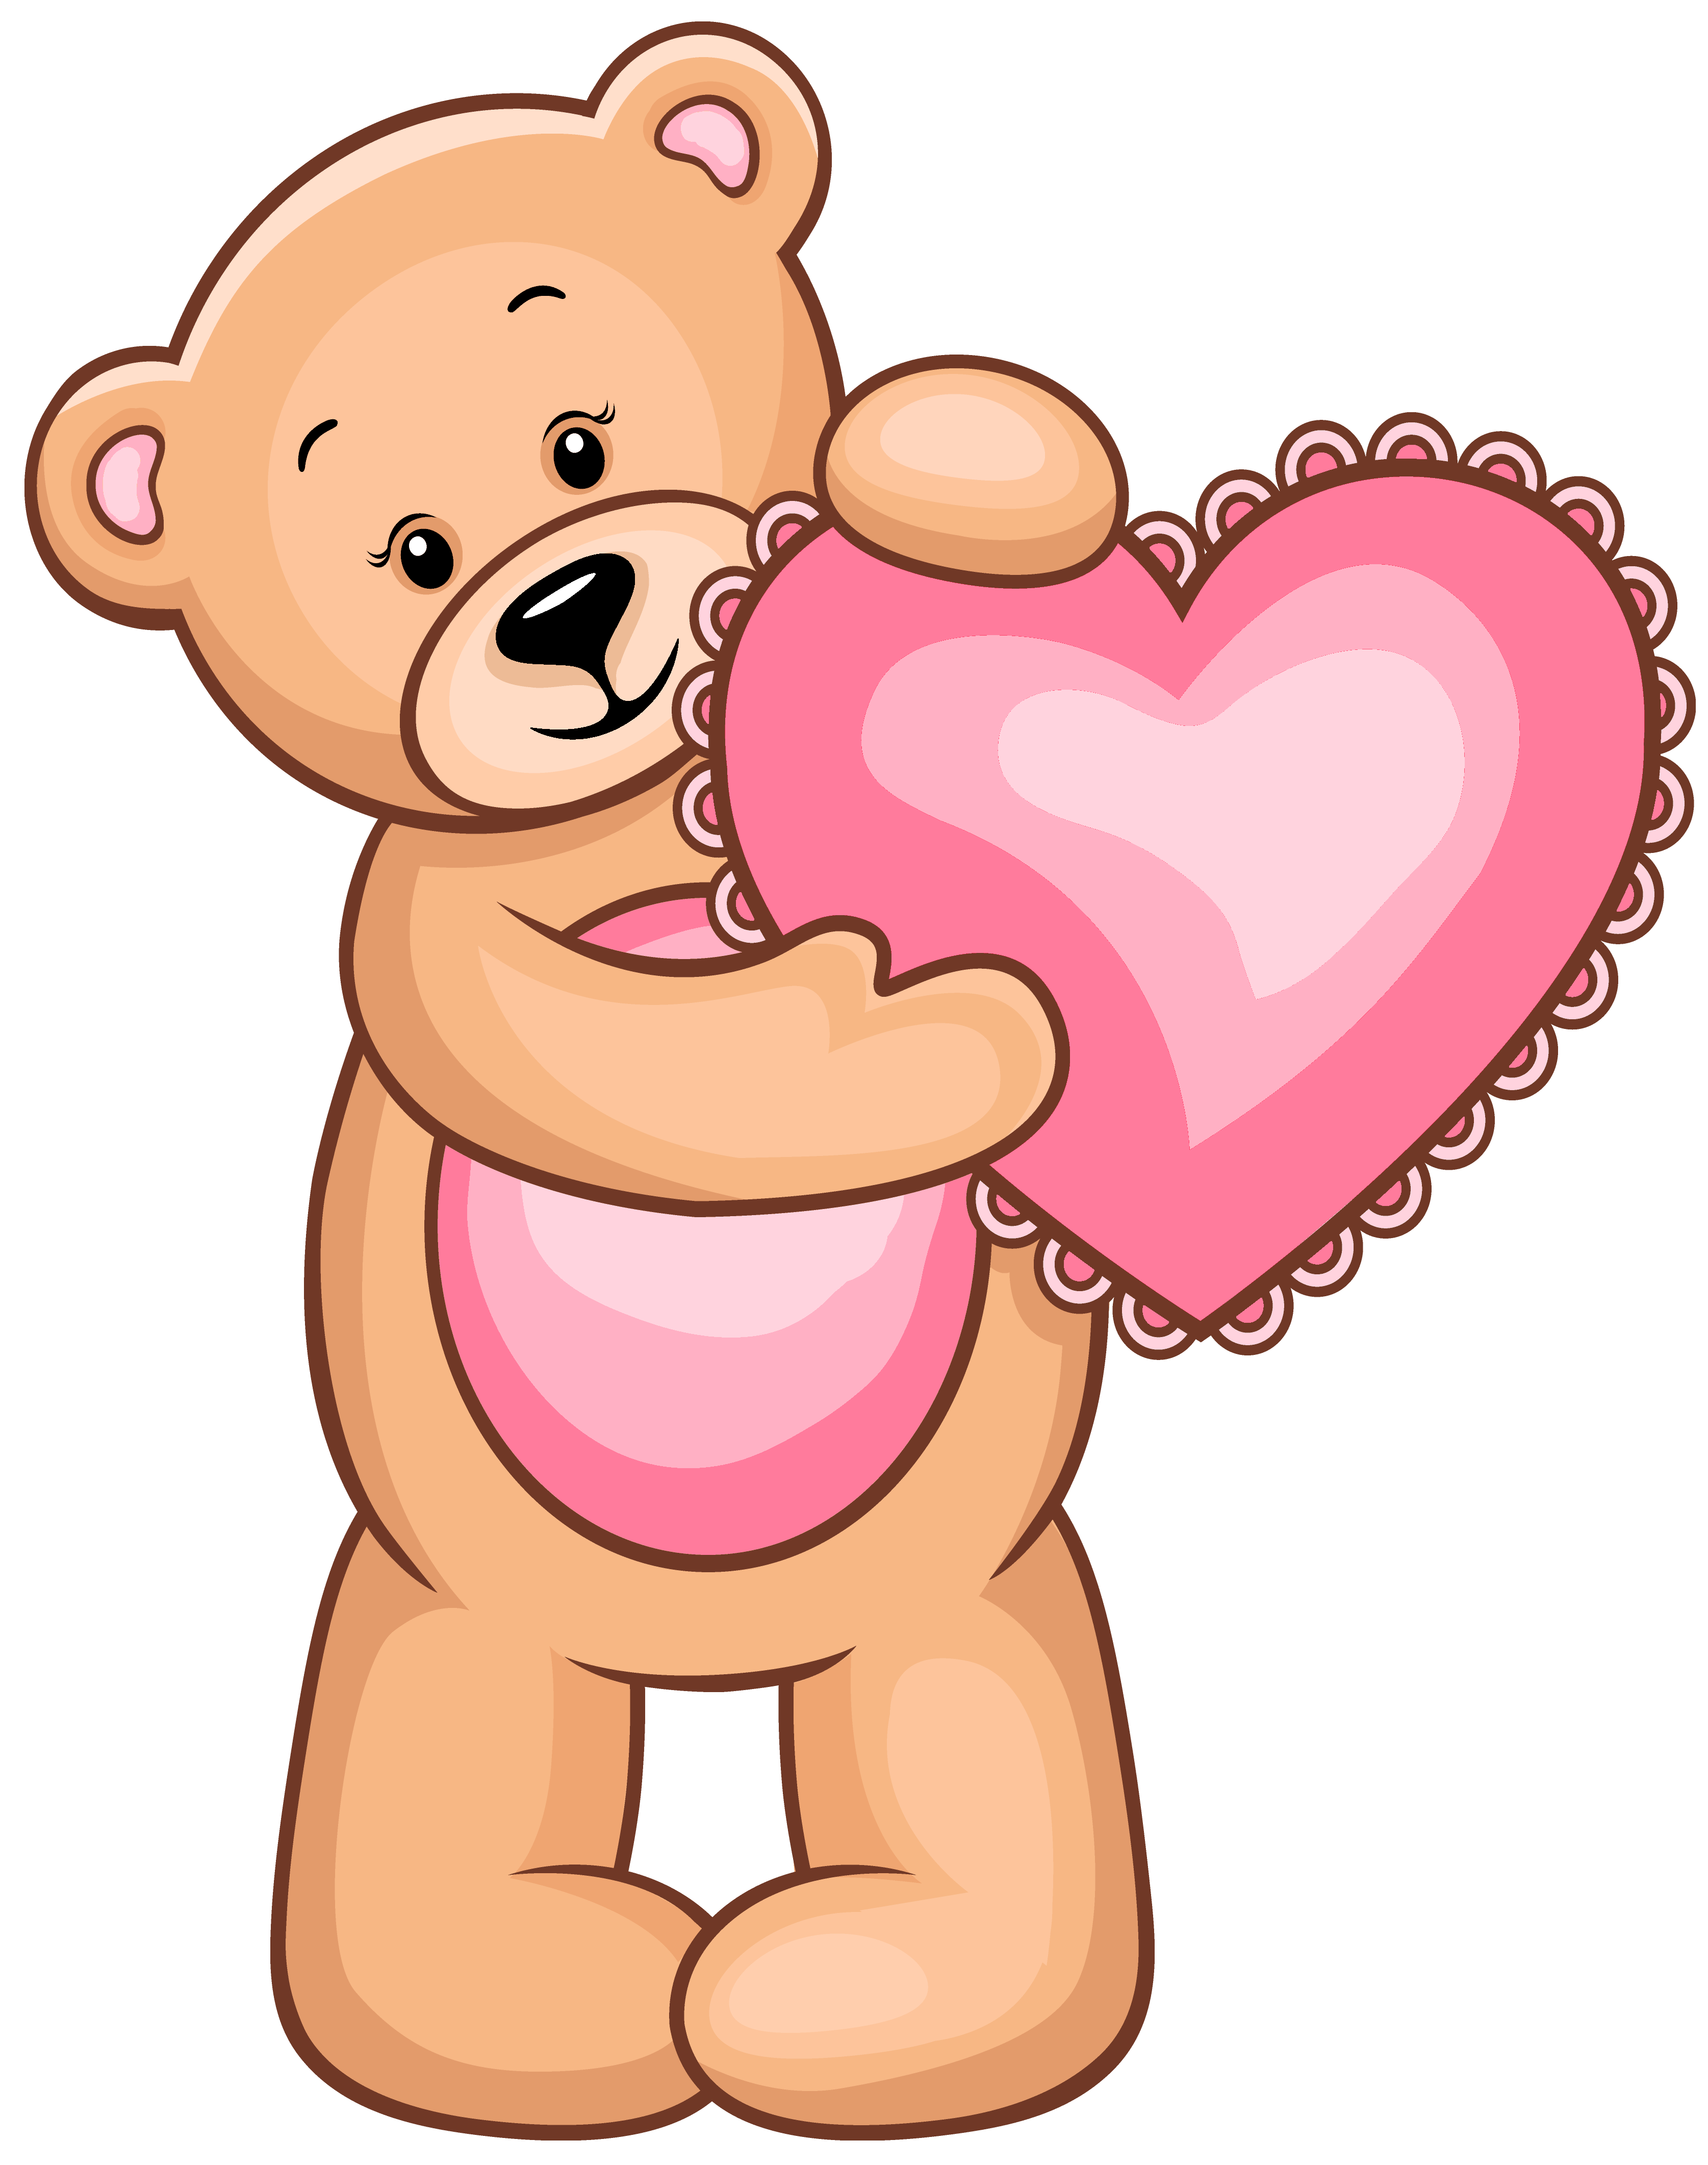 Hearts clipart bear. Transparent teddy with pink